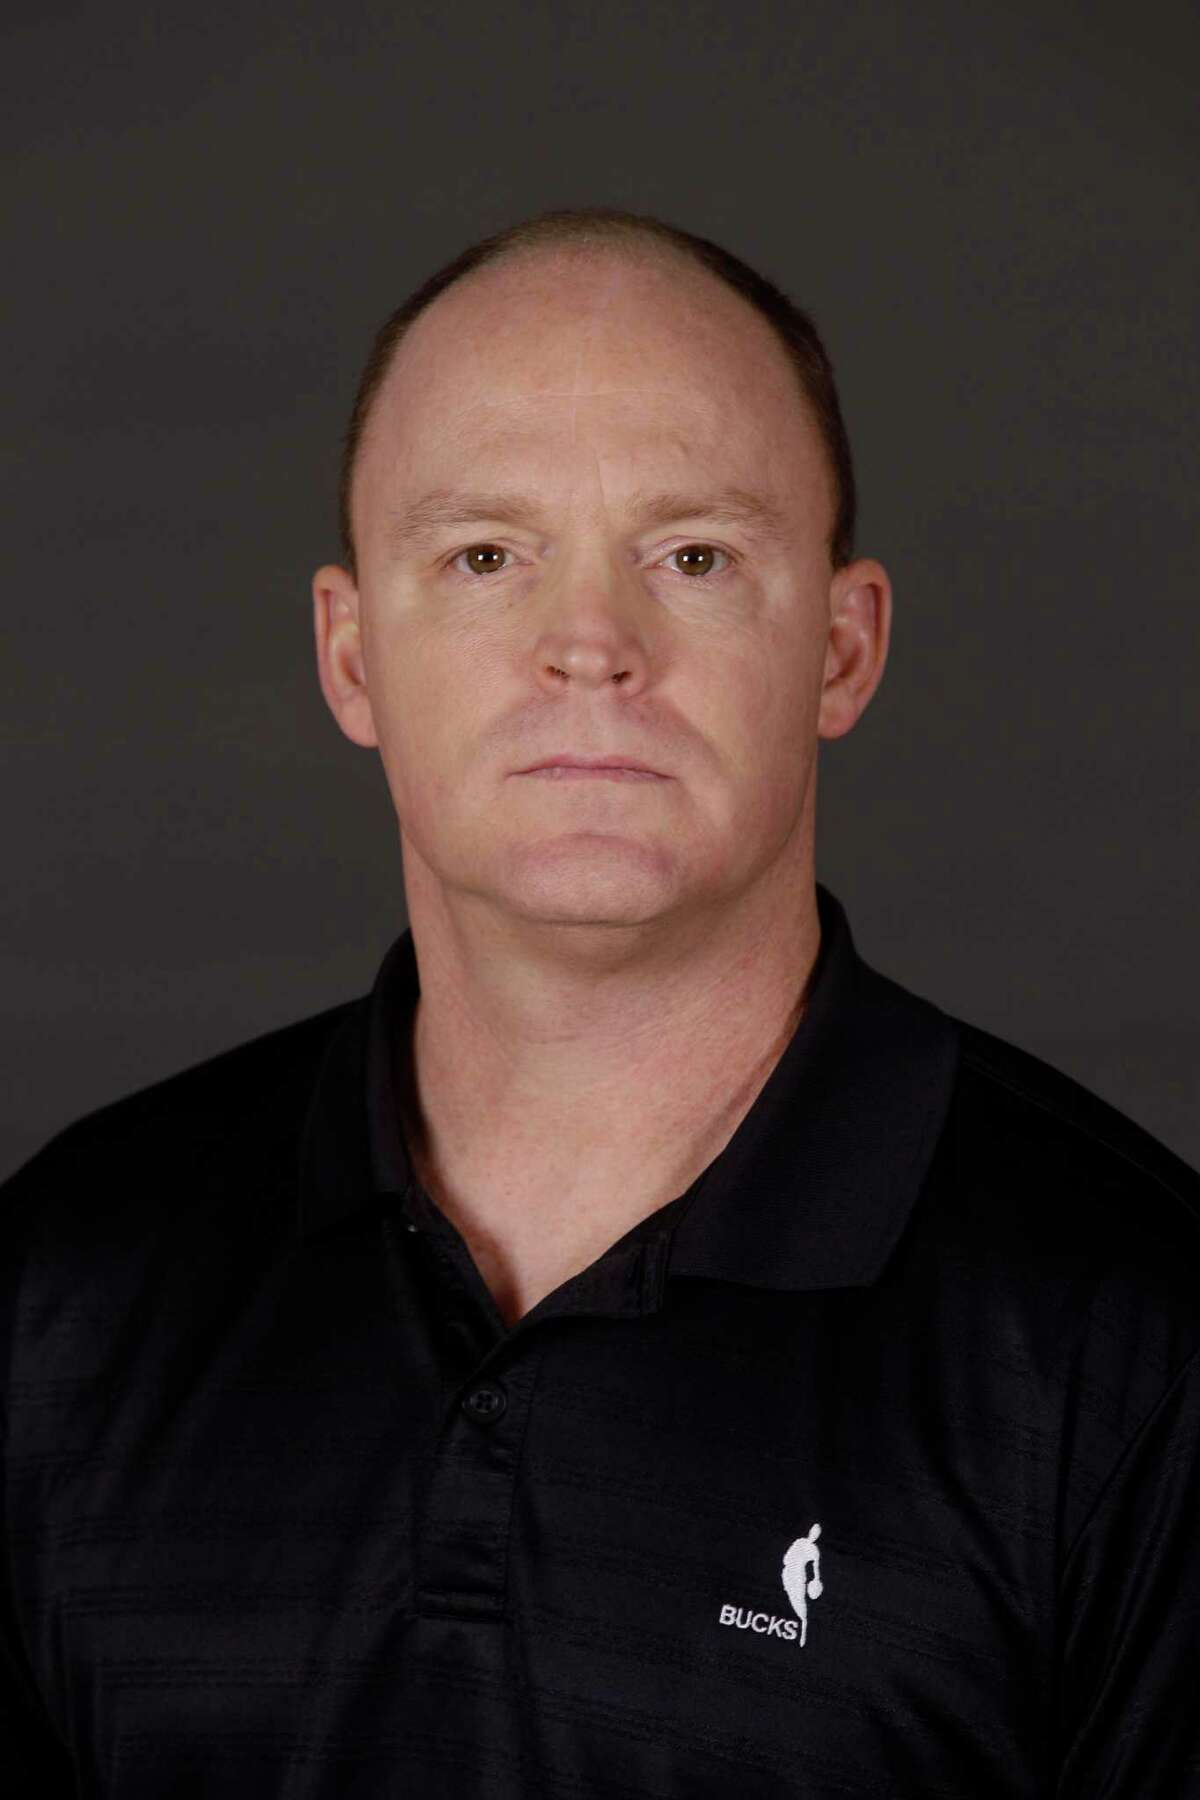 Milwaukee Bucks head coach Scott Skiles poses for a picture during the team's NBA basketball media day Saturday, Dec. 10, 2011, in St. Francis, Wis. (AP Photo/Morry Gash)